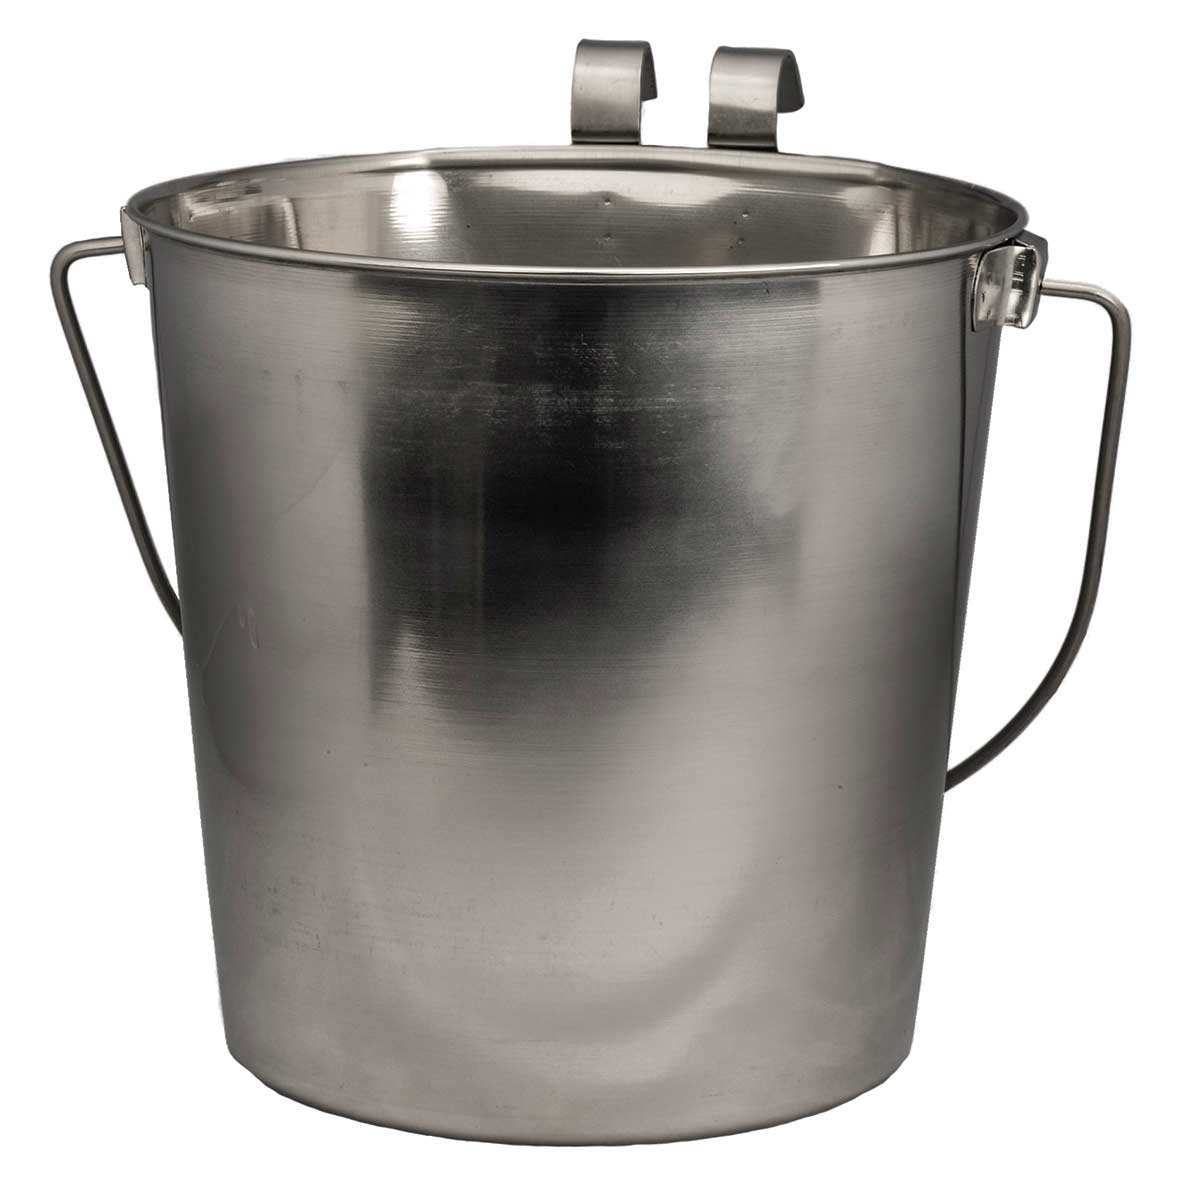 Indipets Flat Side Stainless Steel Pail With Handle 1 Quart for Vets and Kennels